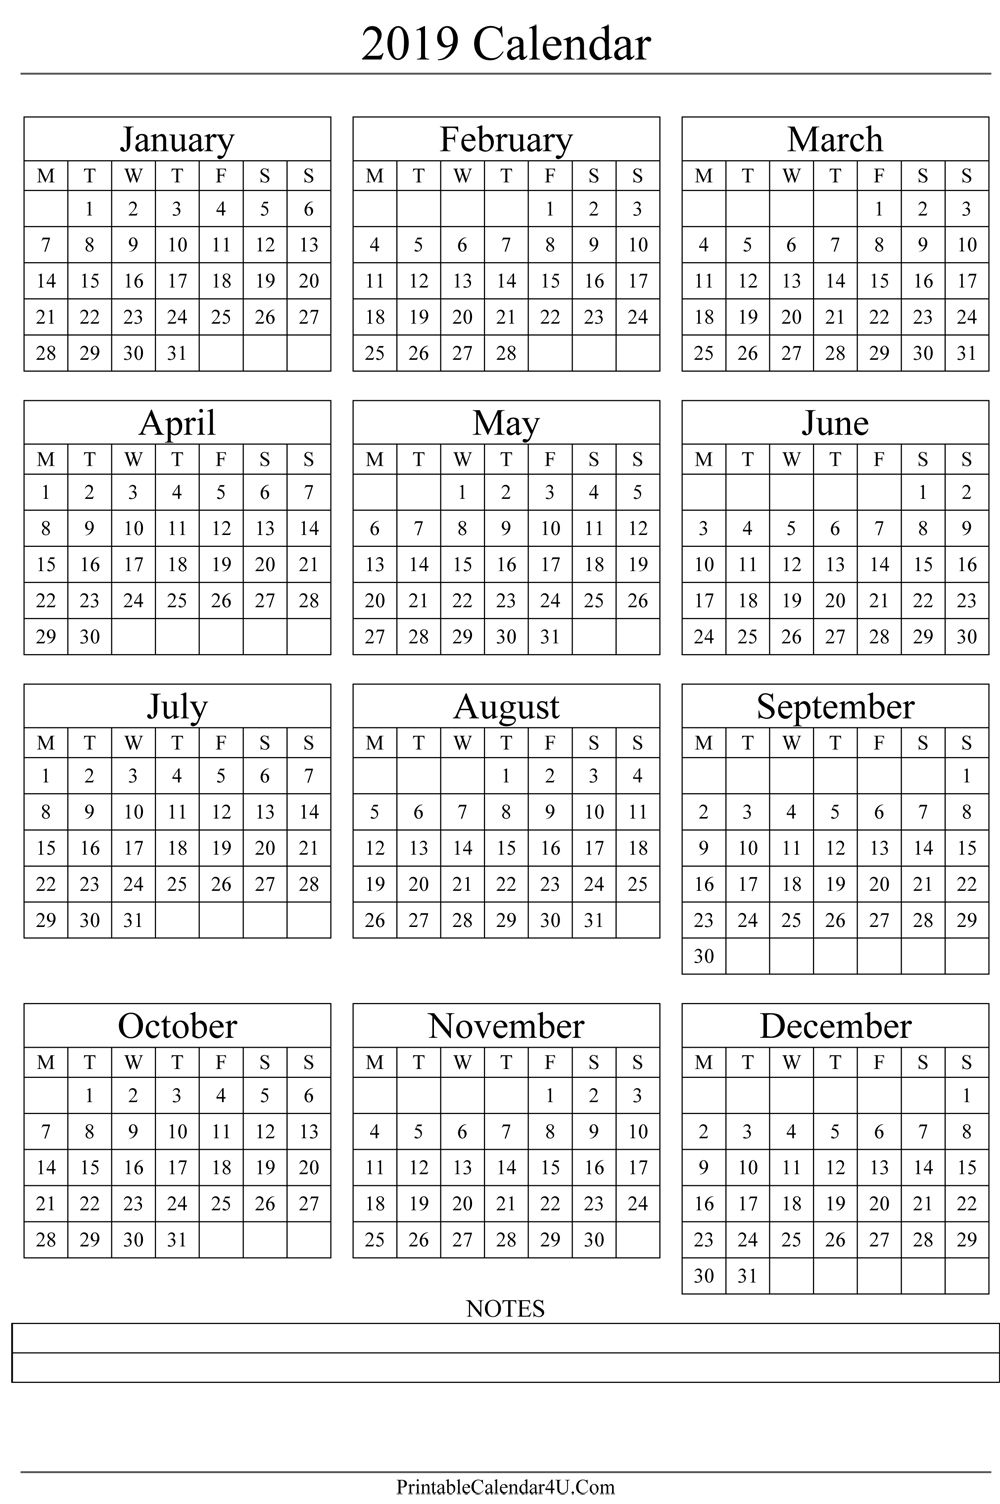 Yearly Calendar 2019 Free Printable annual calendar 2019 portrait printable calendar 2017 | Gift ideas